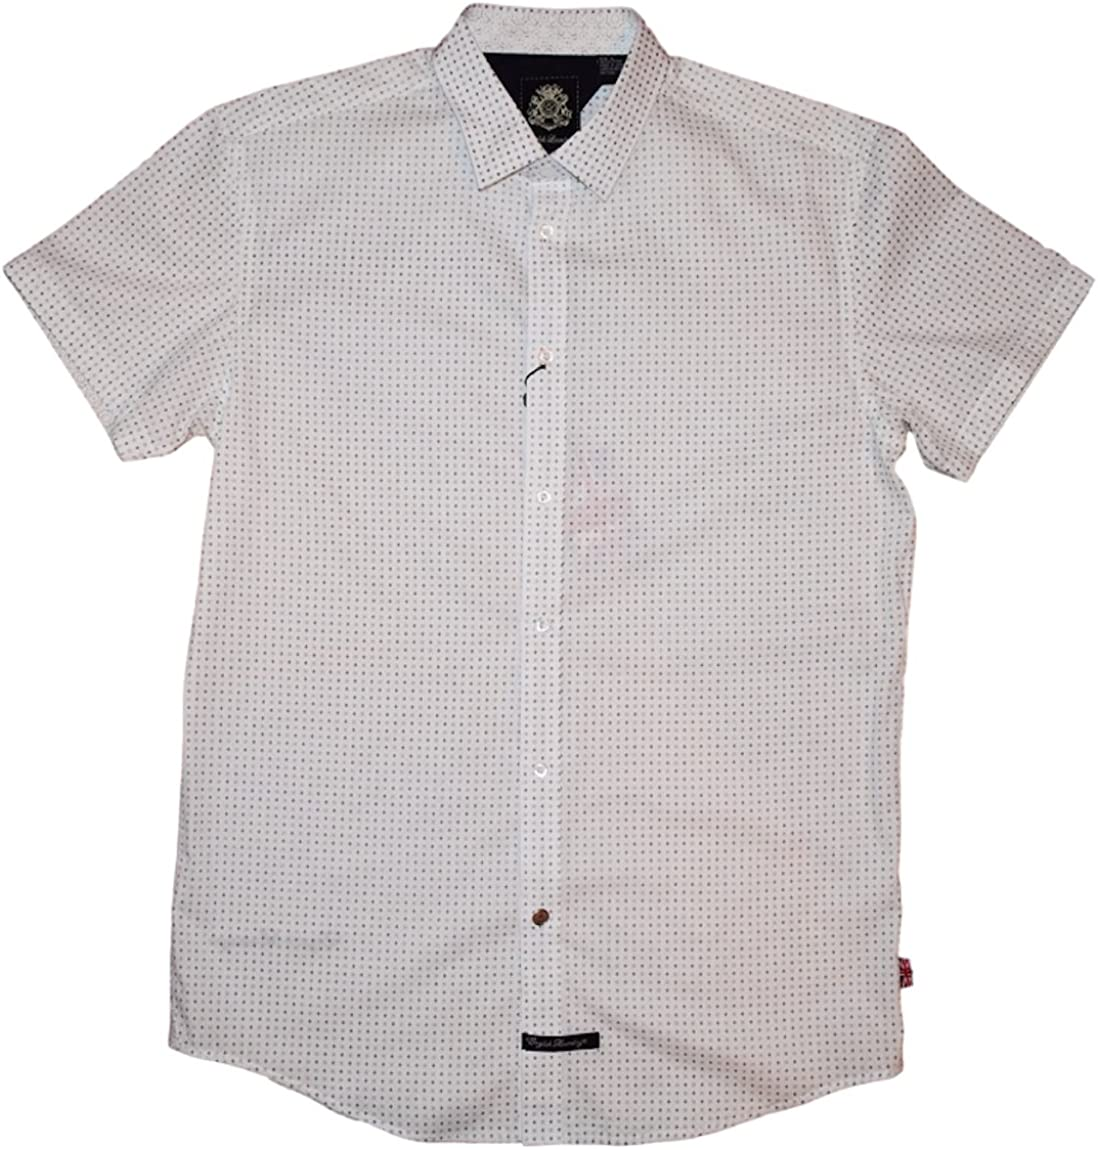 English Laundry Short Sleeve Woven Trim Fit Shirt